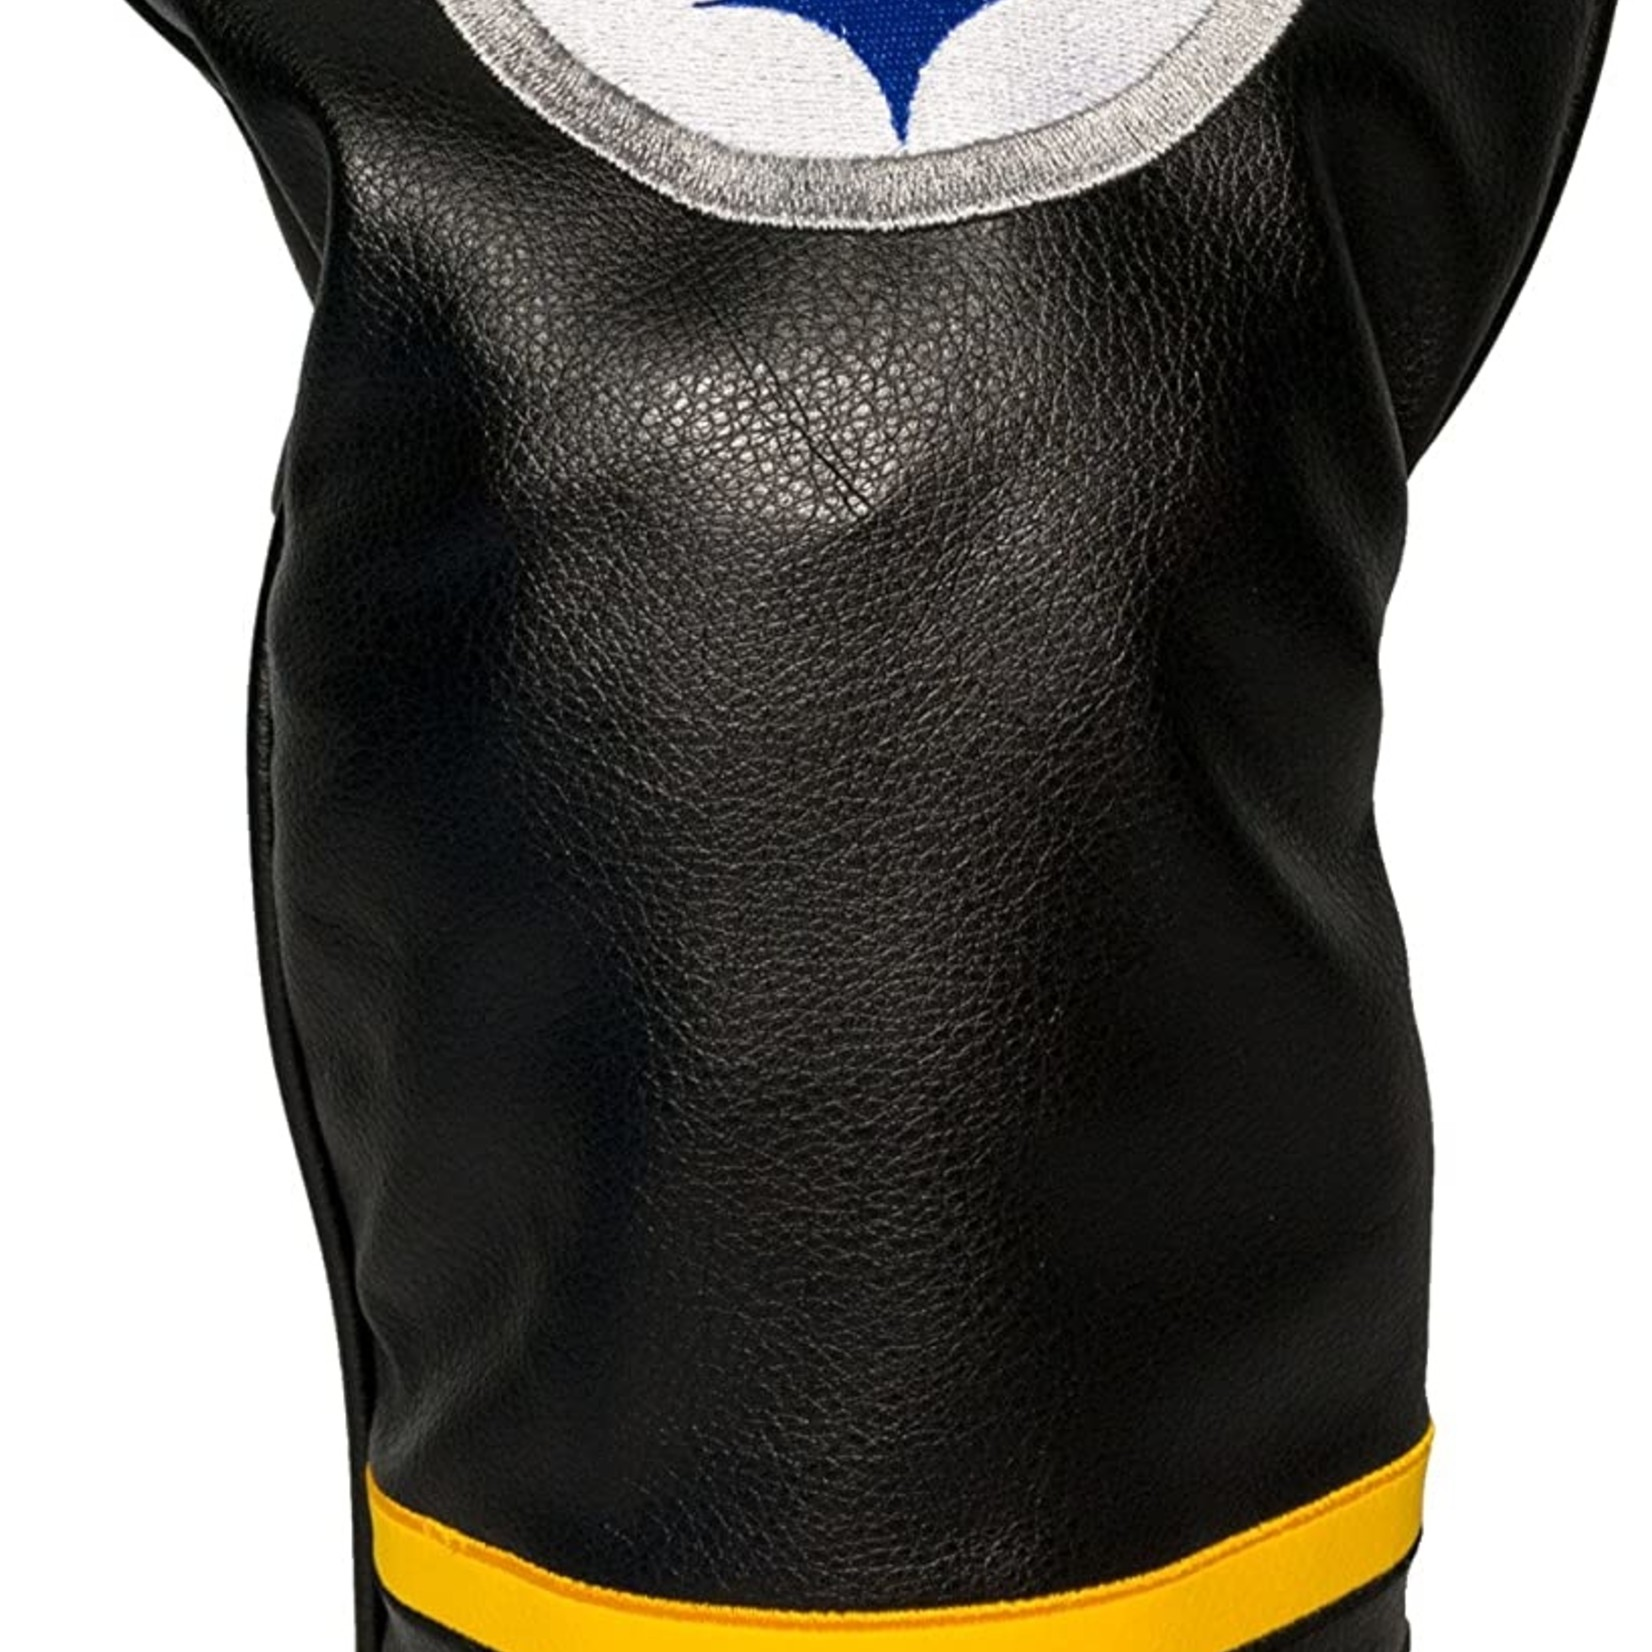 Team Golf NFL Vintage Driver Headcovers